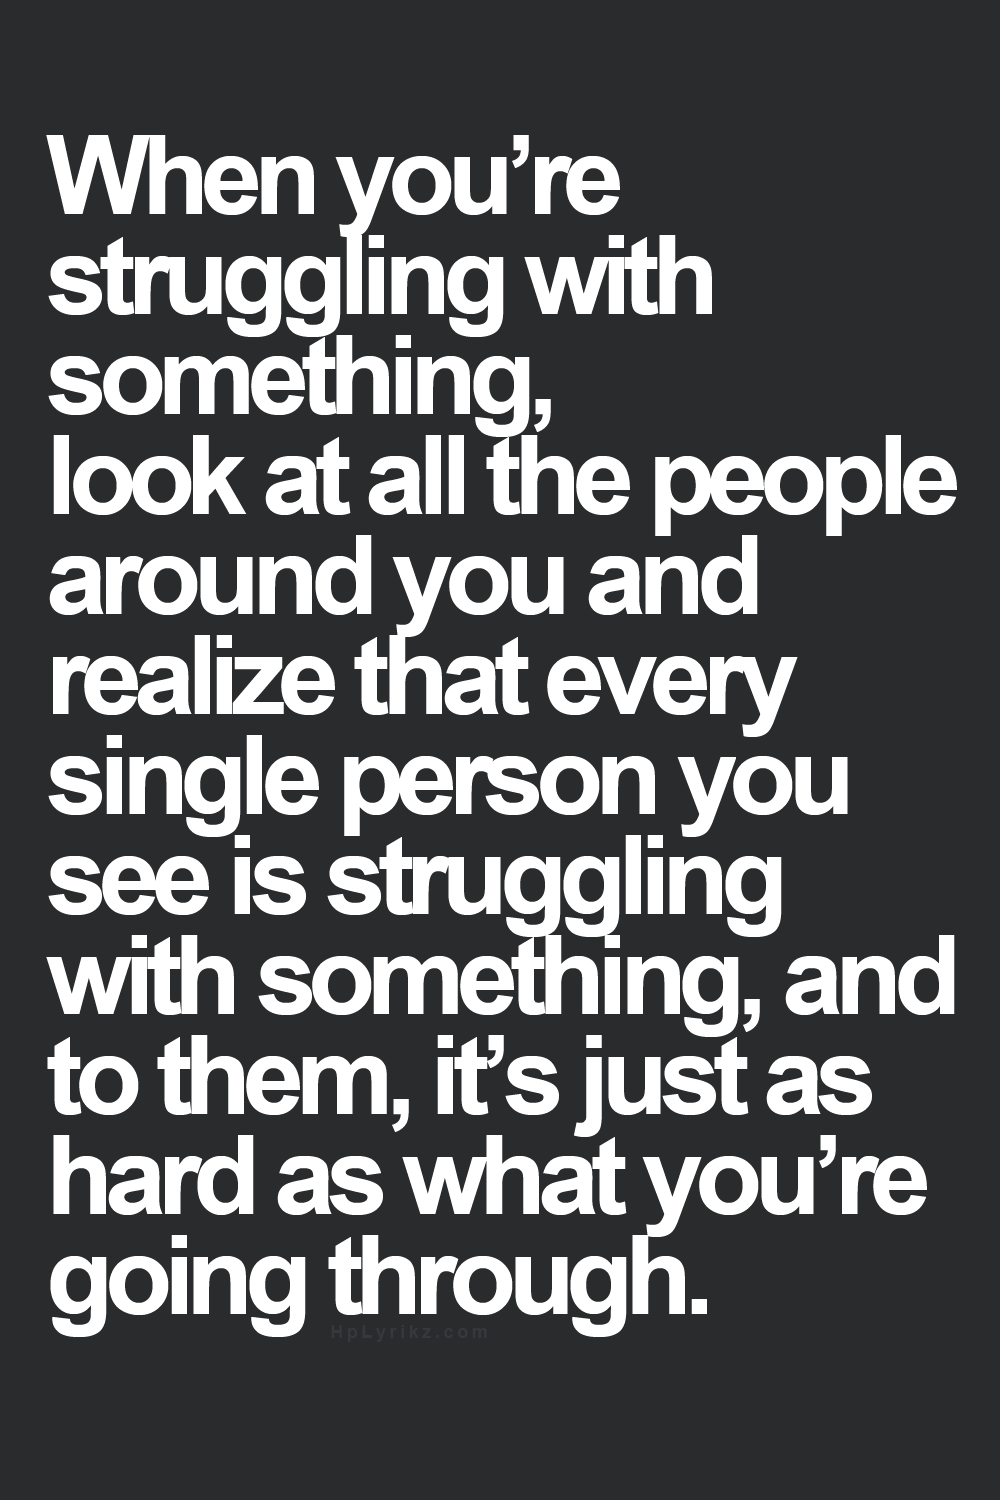 Quotes About Life Struggles Everyone Struggles  Use Your Words  Pinterest  Wisdom Truths